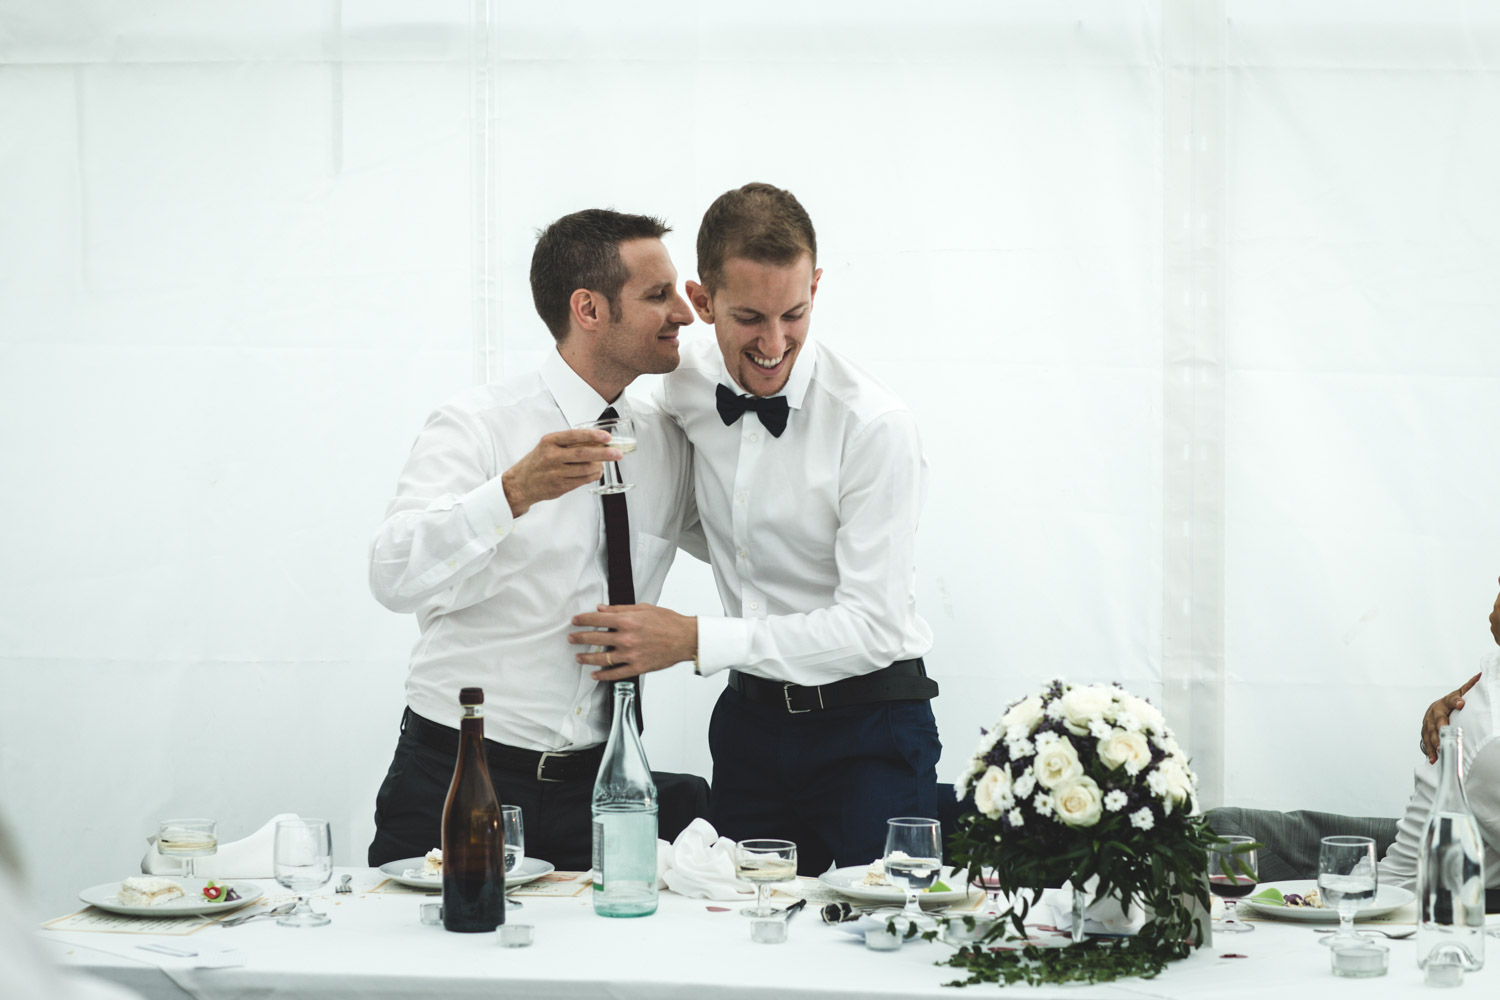 monica-sica_photography_trattoria-revelli_wedding-gay_torino_day_66